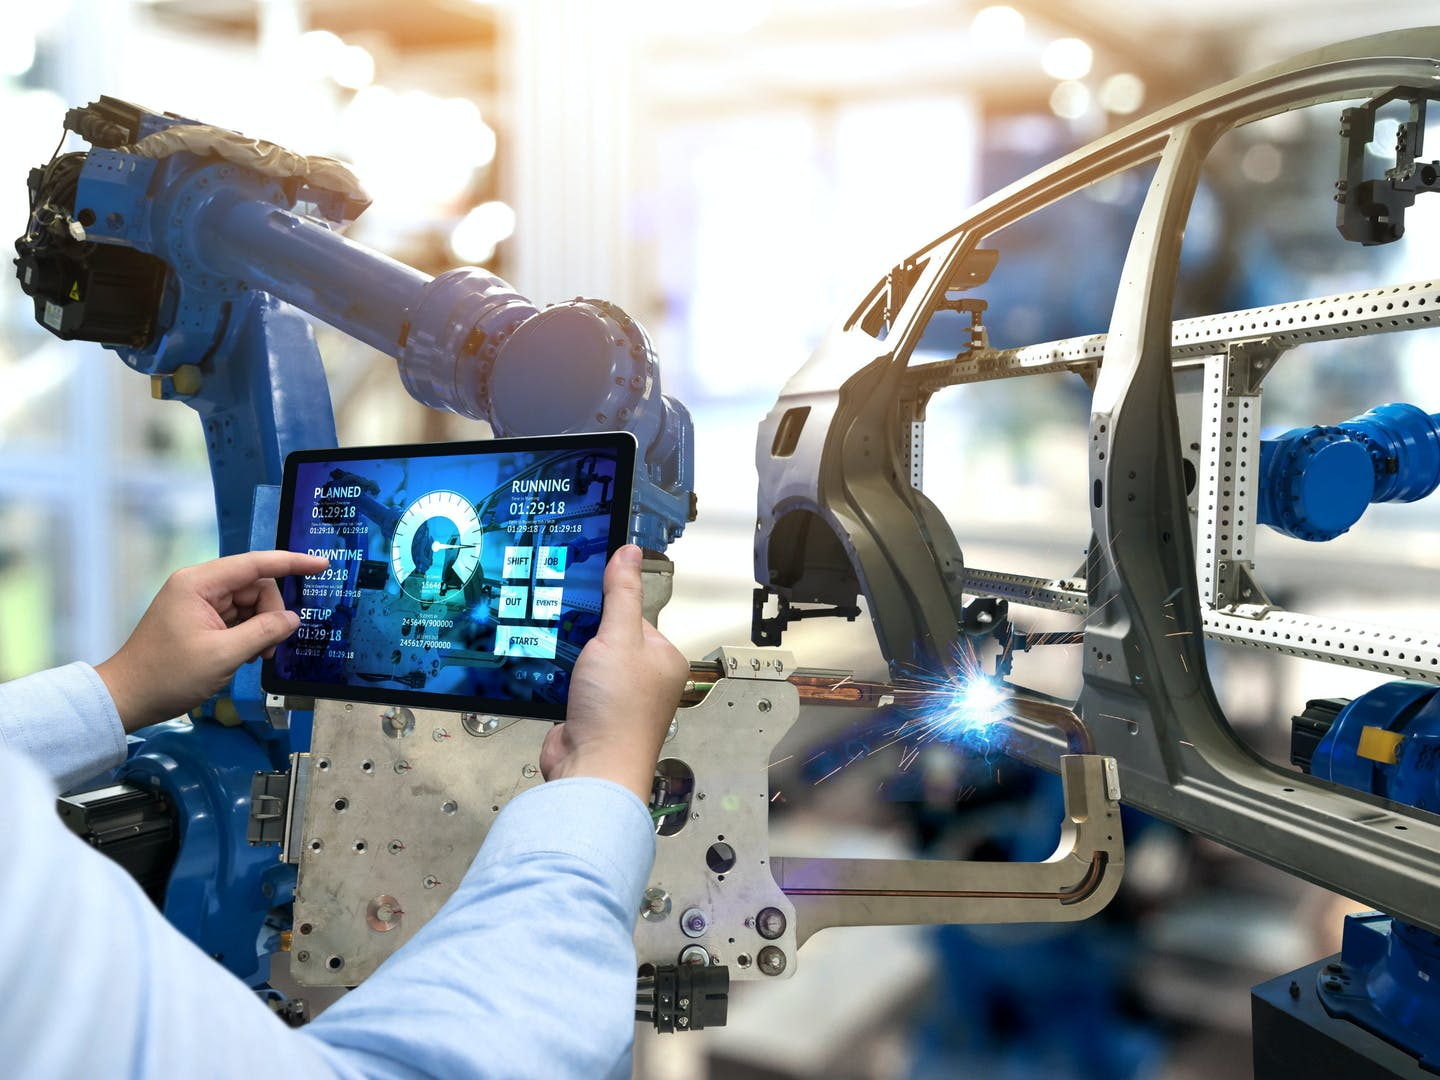 7 ways manufacturing technology has helped transform the auto industry